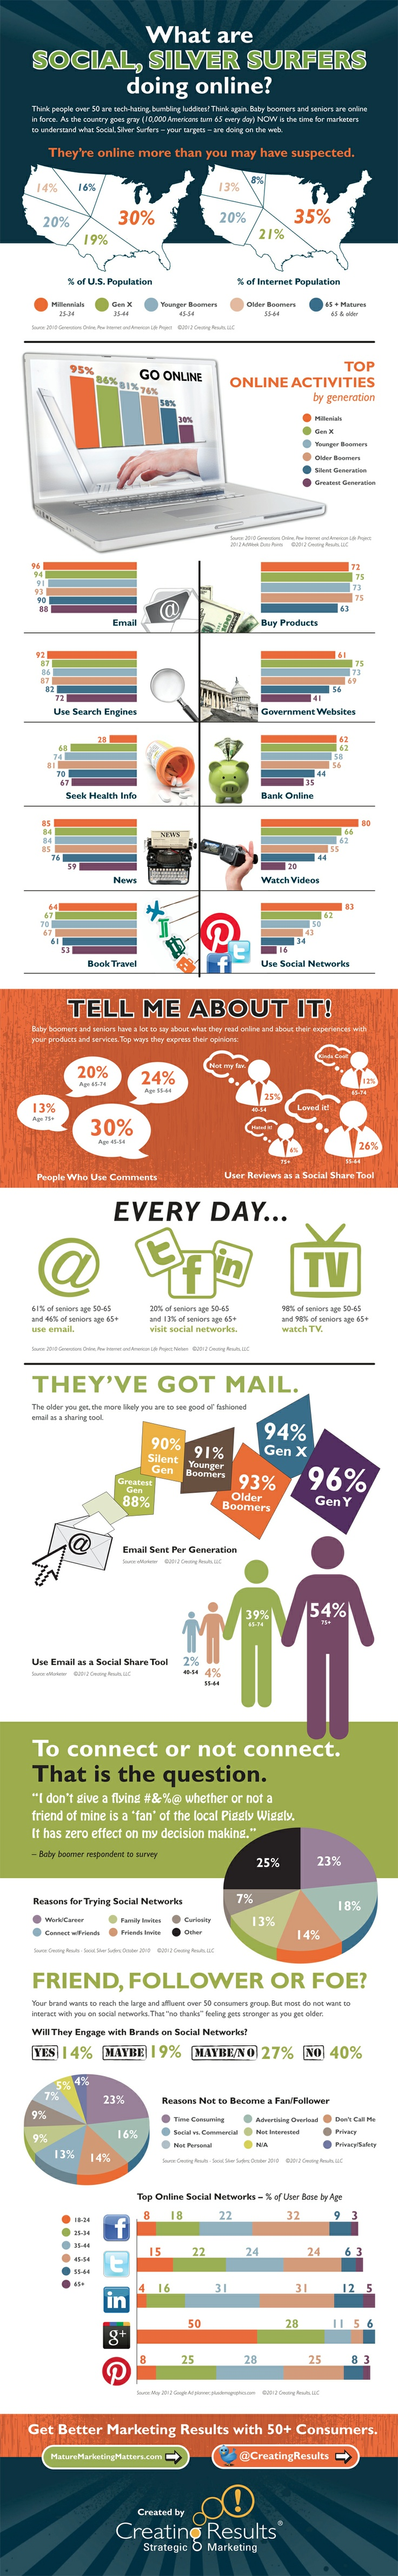 Creating Results, LLC, a leader in marketing to baby boomers and seniors, has created an infographic with statistics and information about what (older) people do online.